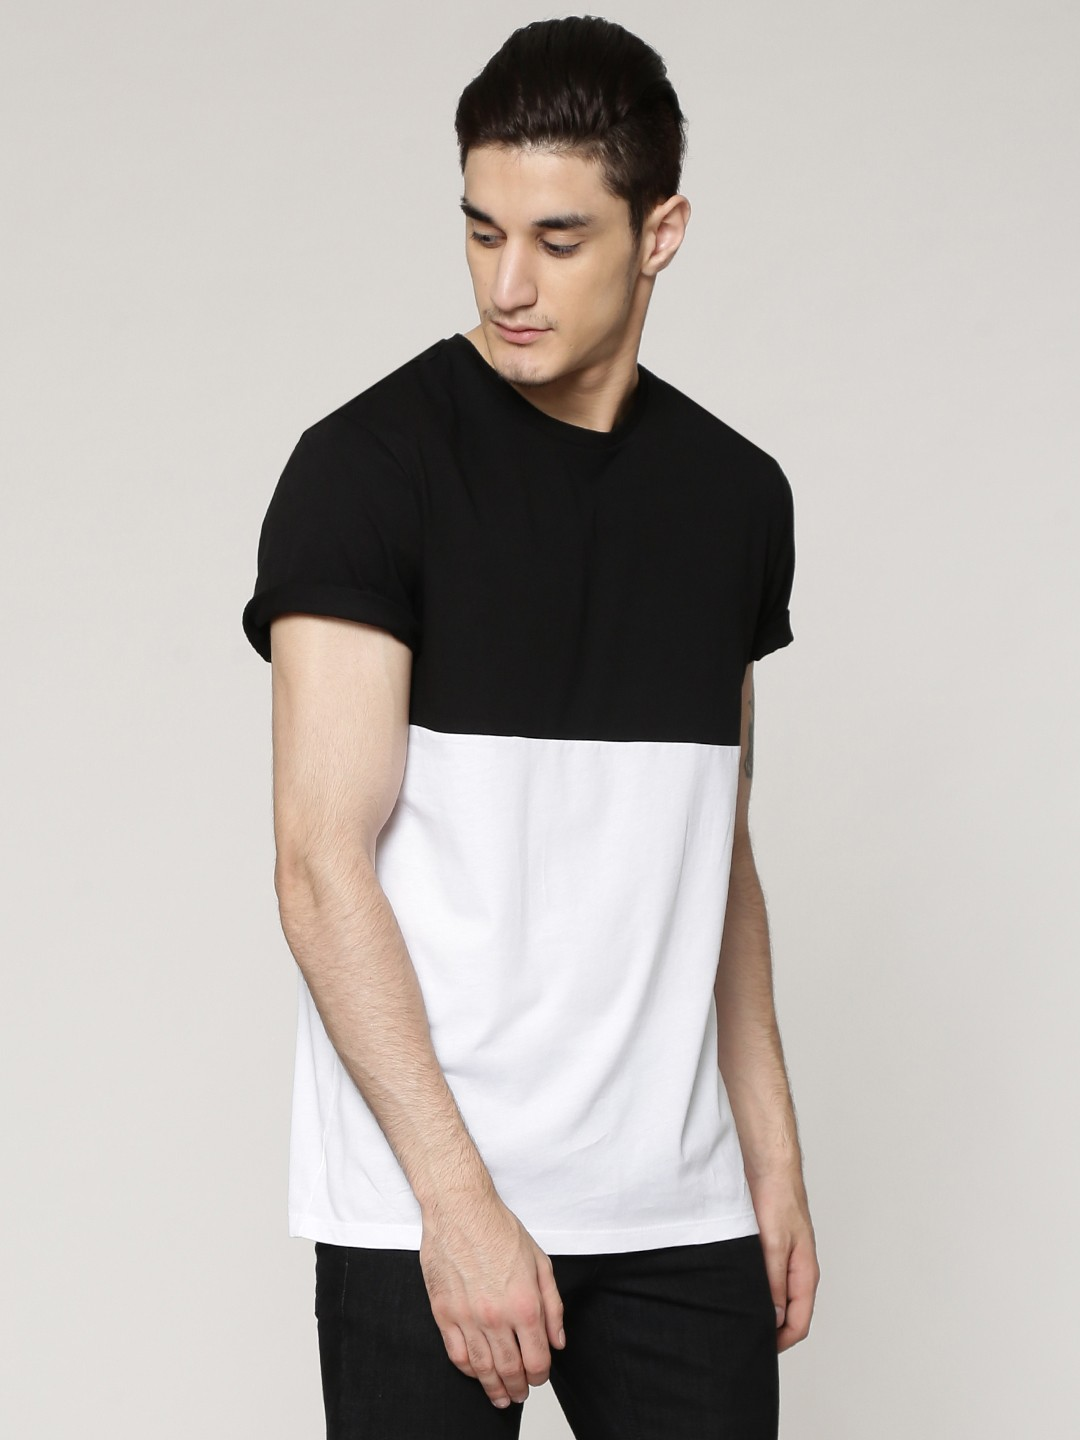 Black t shirt buy online - New Look Color Blocked T Shirt